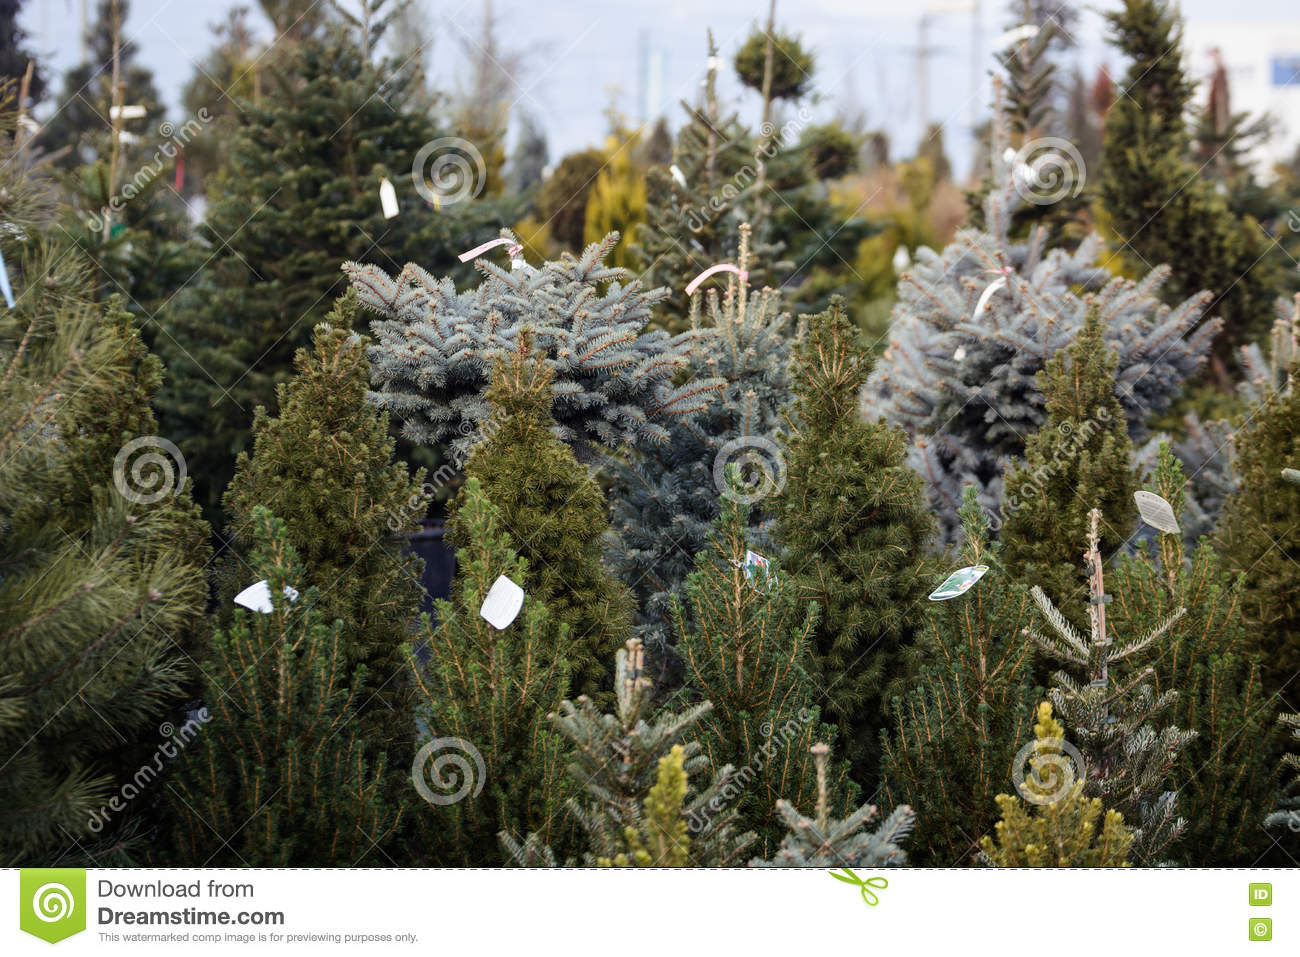 Many Types Of Christmas Trees For Sale Stock Photo - Image of label ...